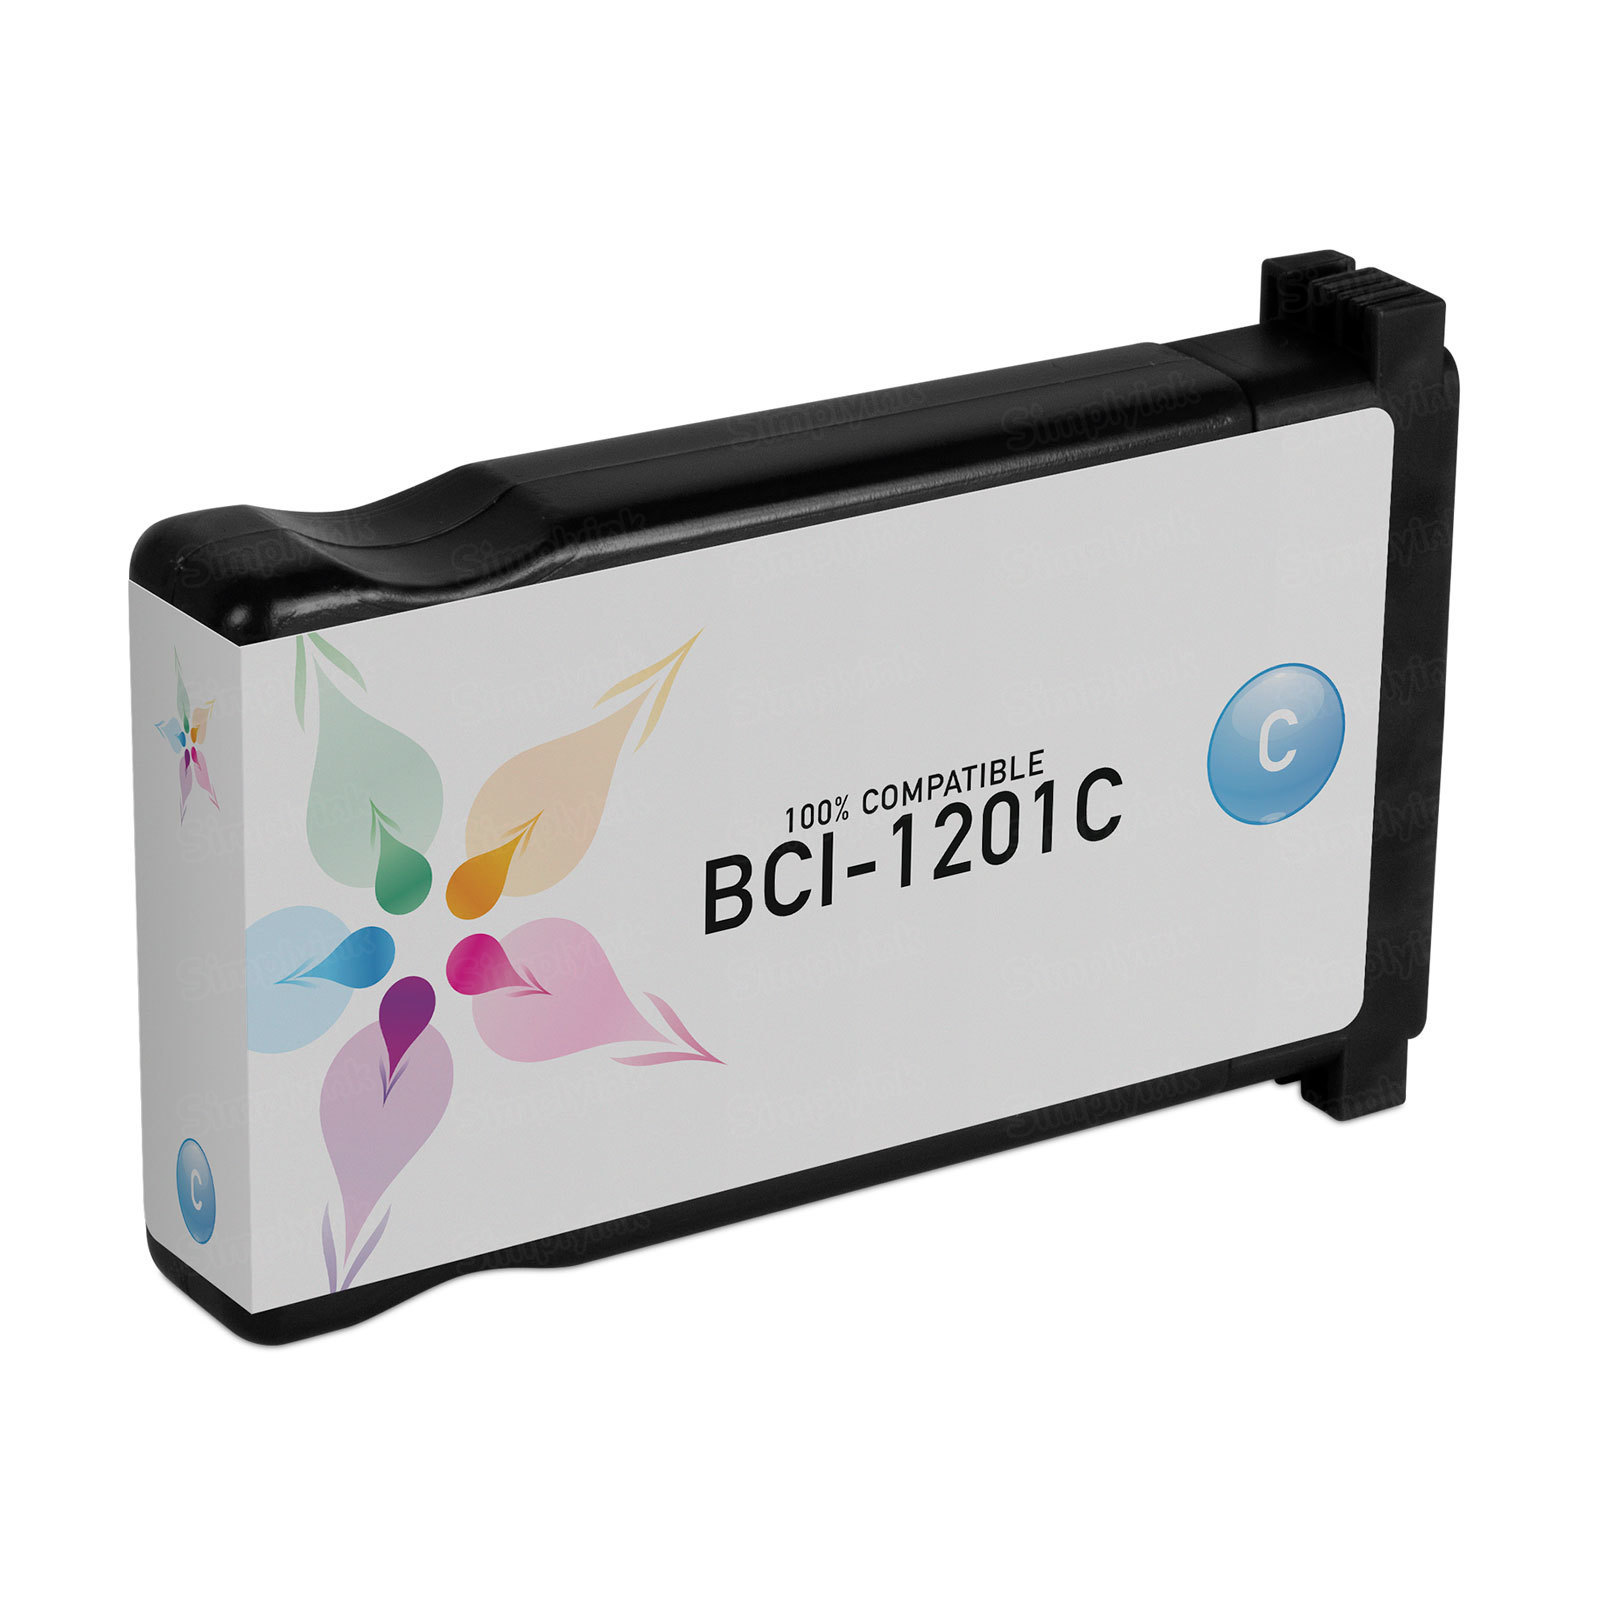 Canon Compatible BCI-1201C Cyan Ink for N1000 & N2000